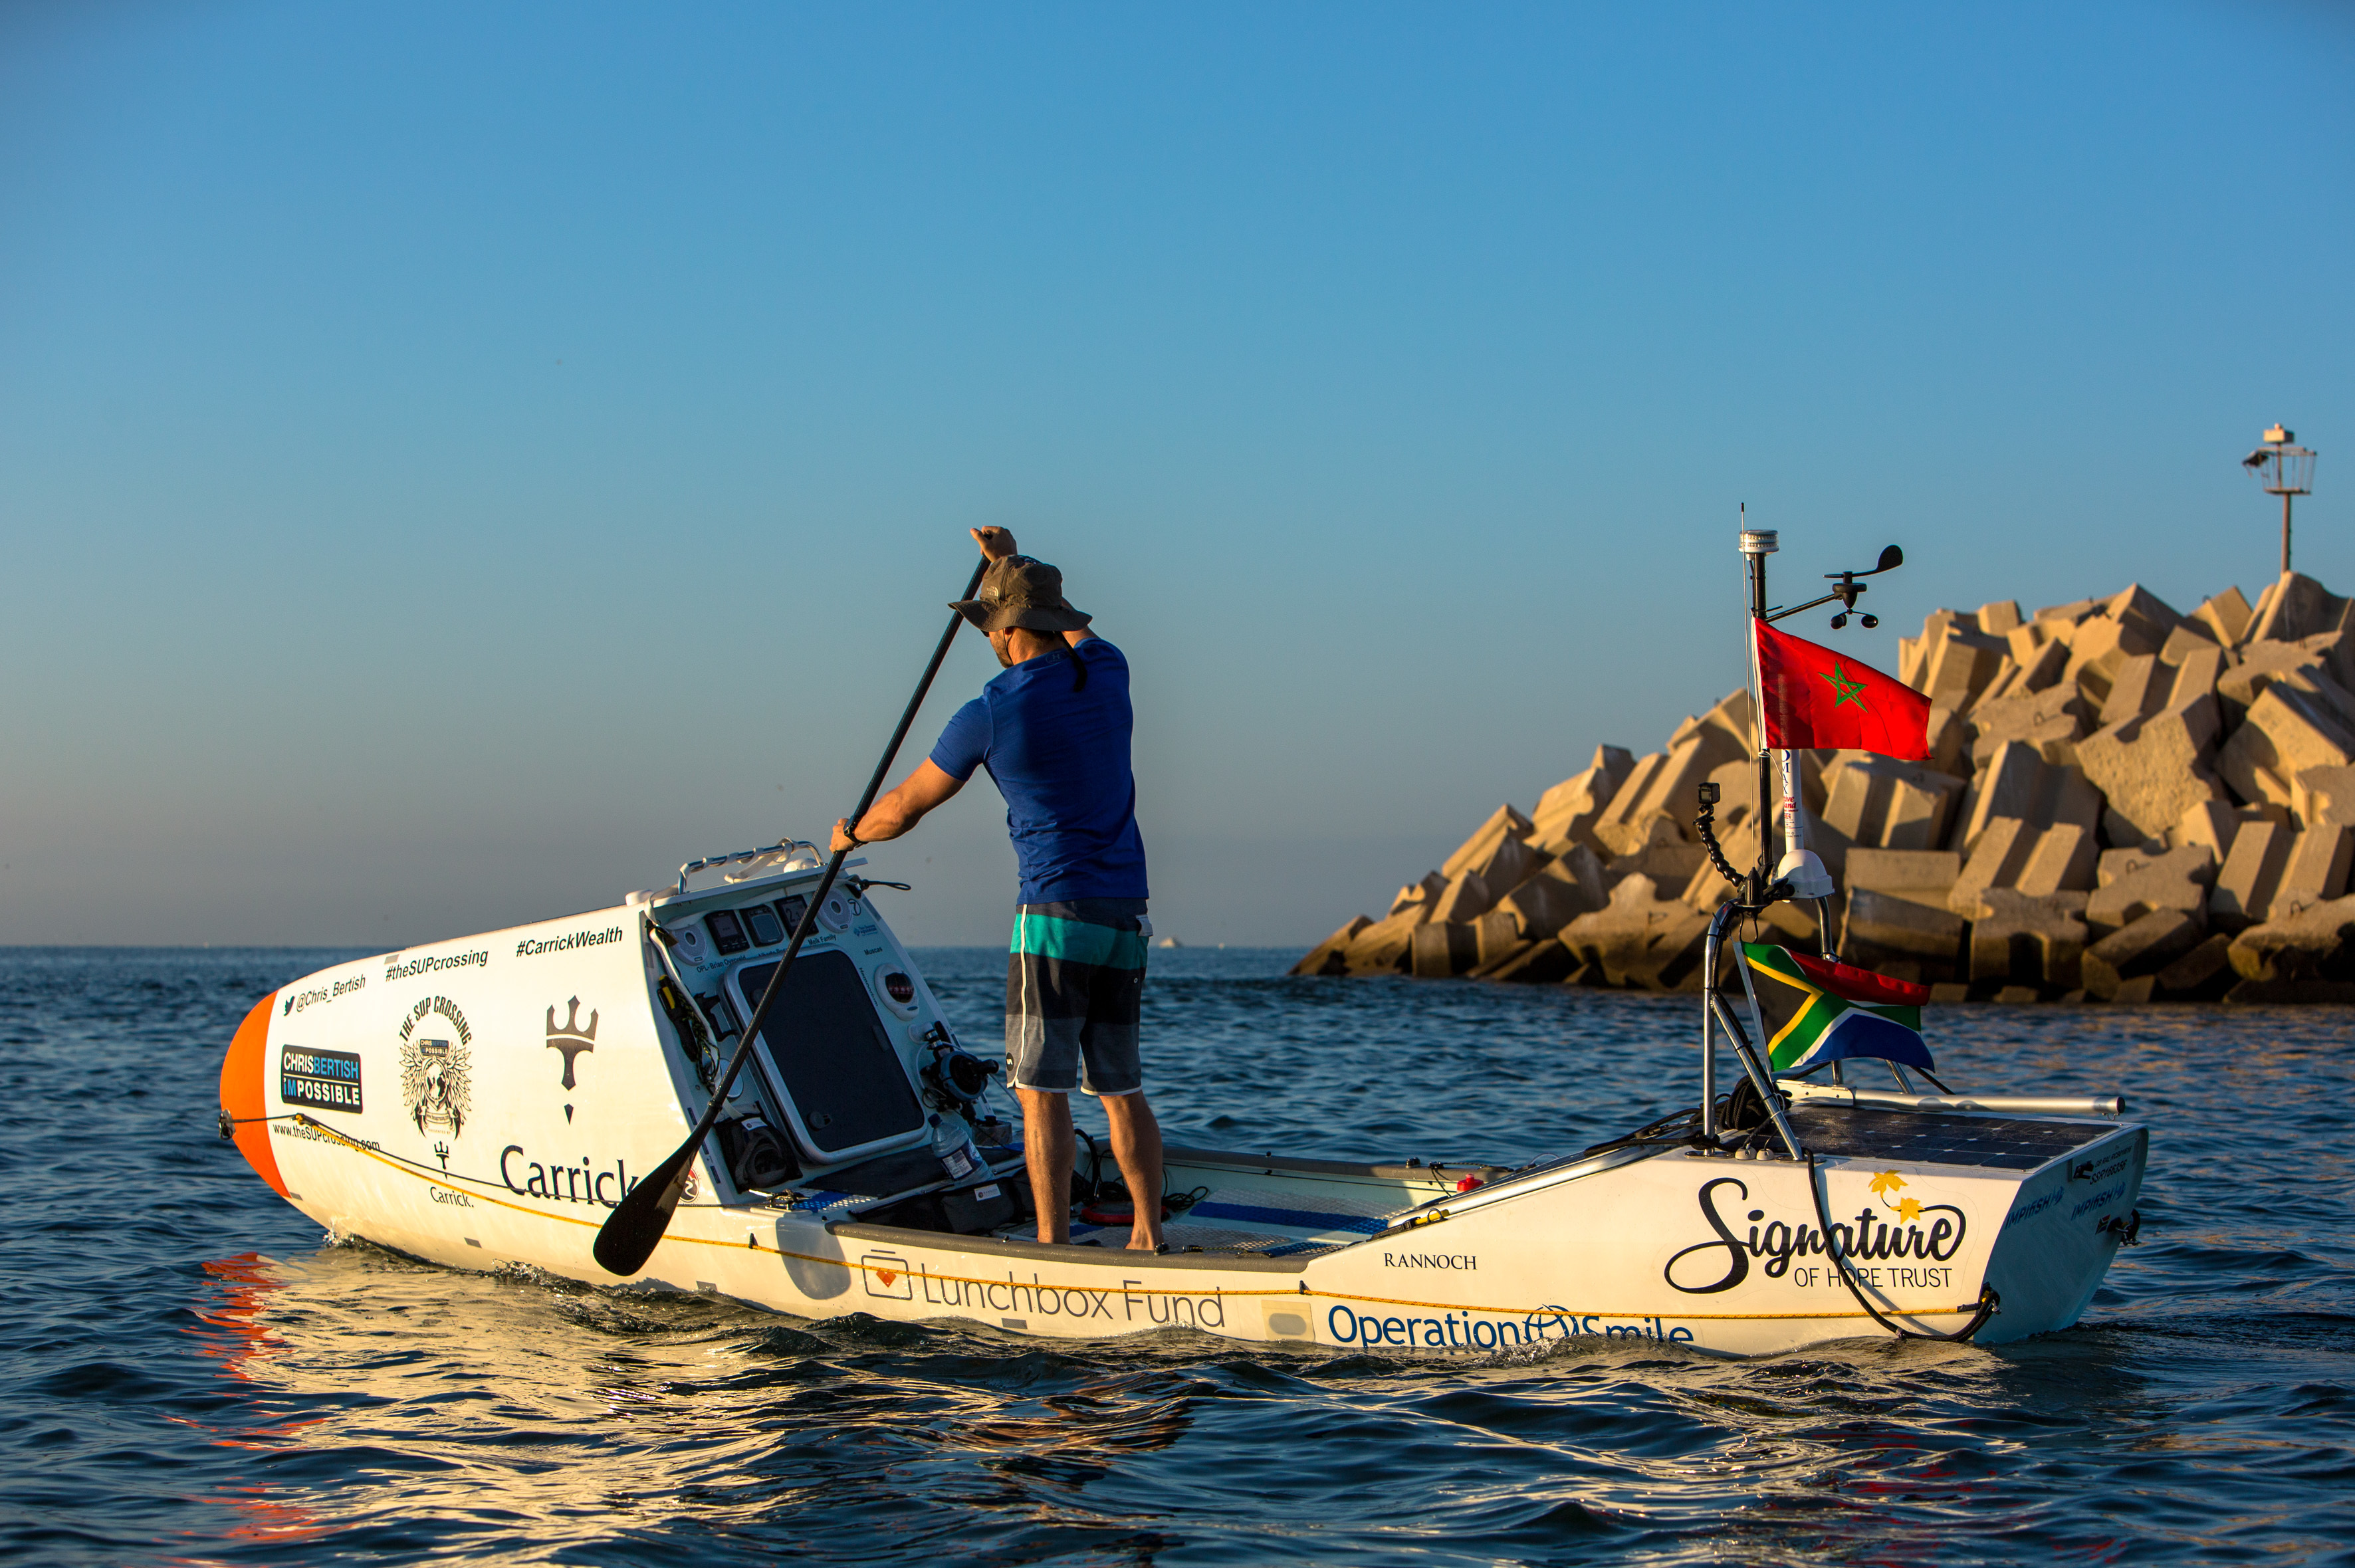 South African surfer and sailor Chris Bertish practices in his 20-foot stand-up paddleboard, just days prior to his launch on Tuesday.